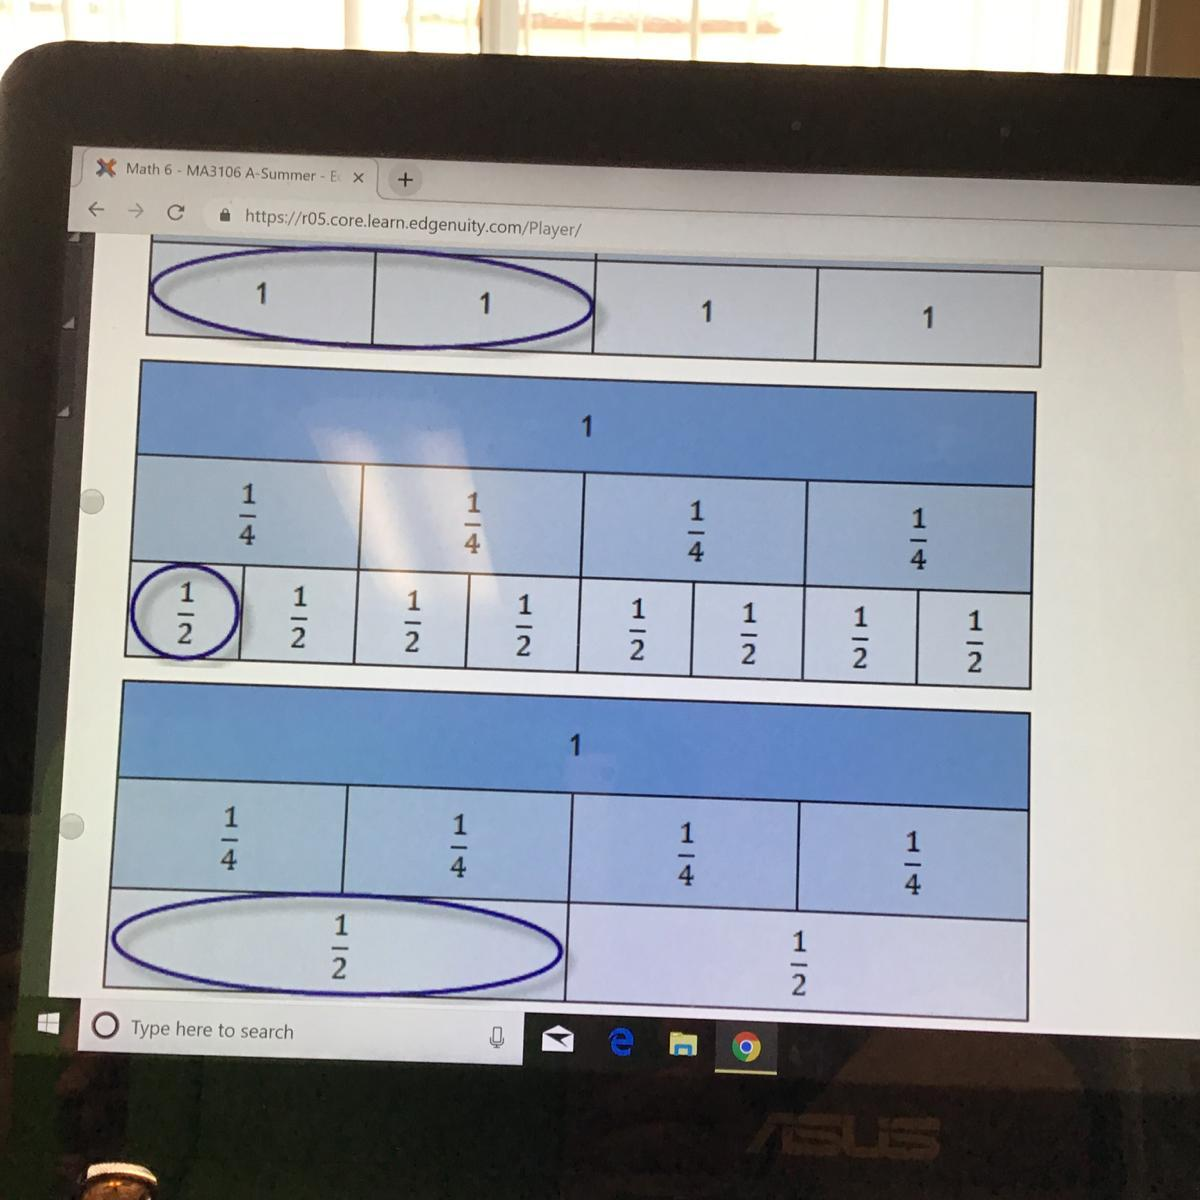 Which Diagram Best Shows How Fraction Bars Can Be Used To